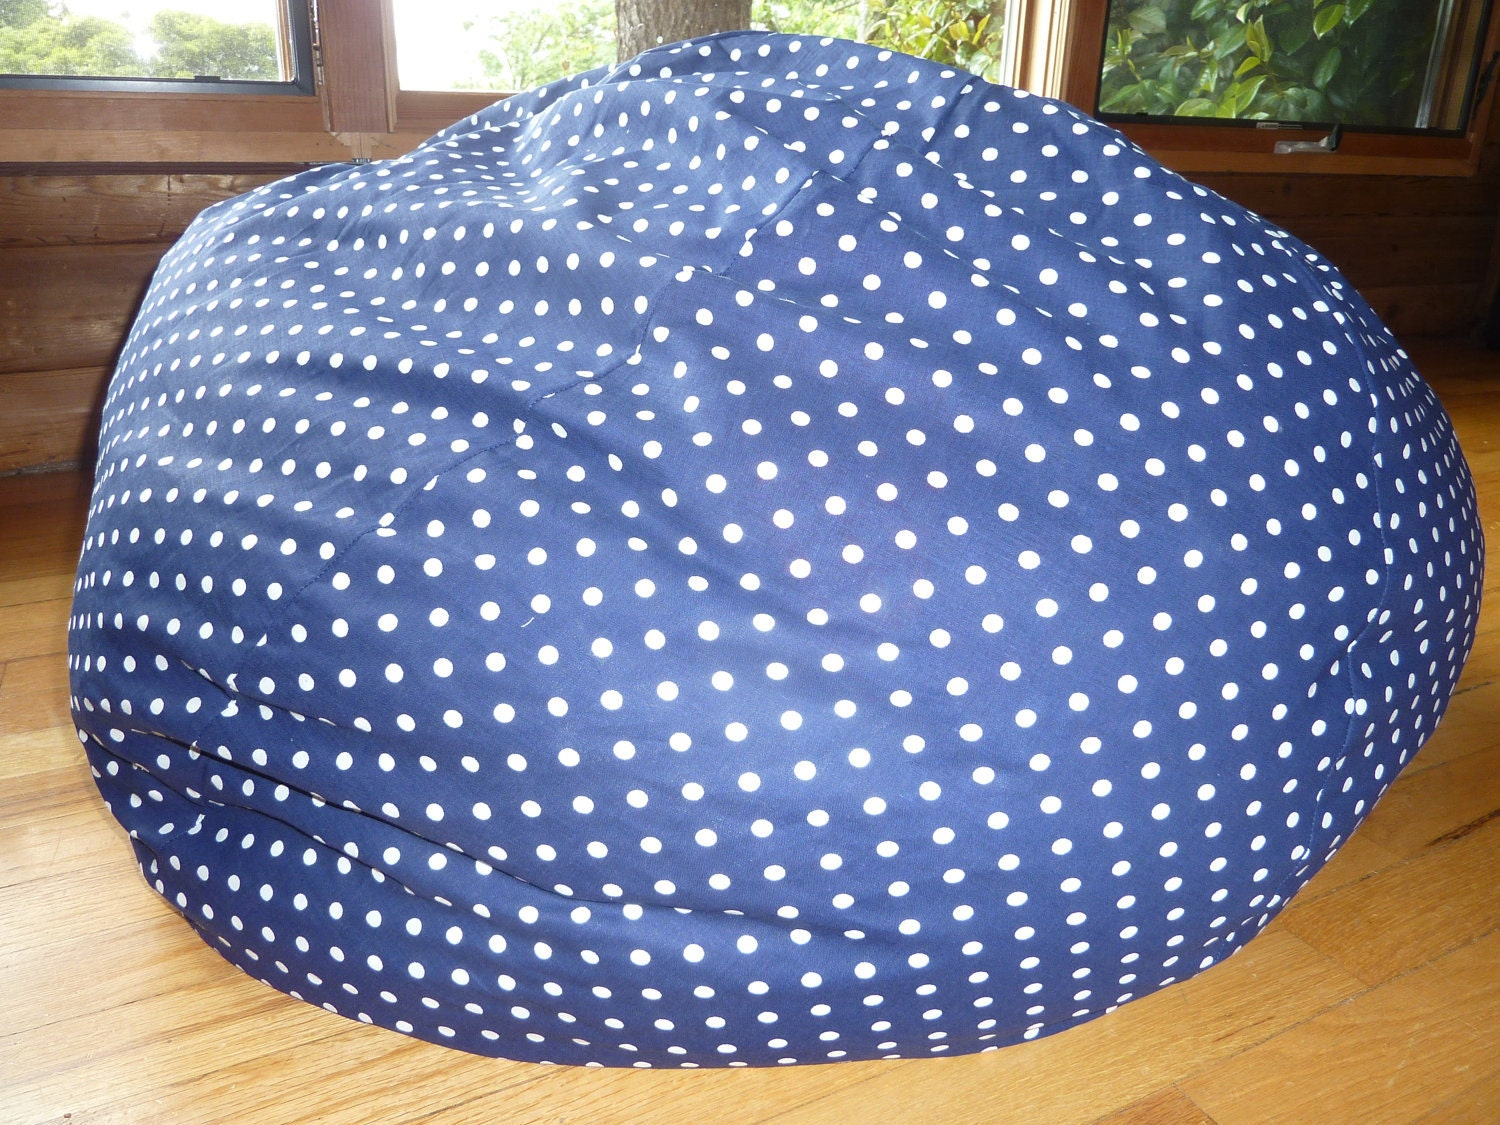 Navy Blue With White Polka Dot Bean Bag Chair Cover